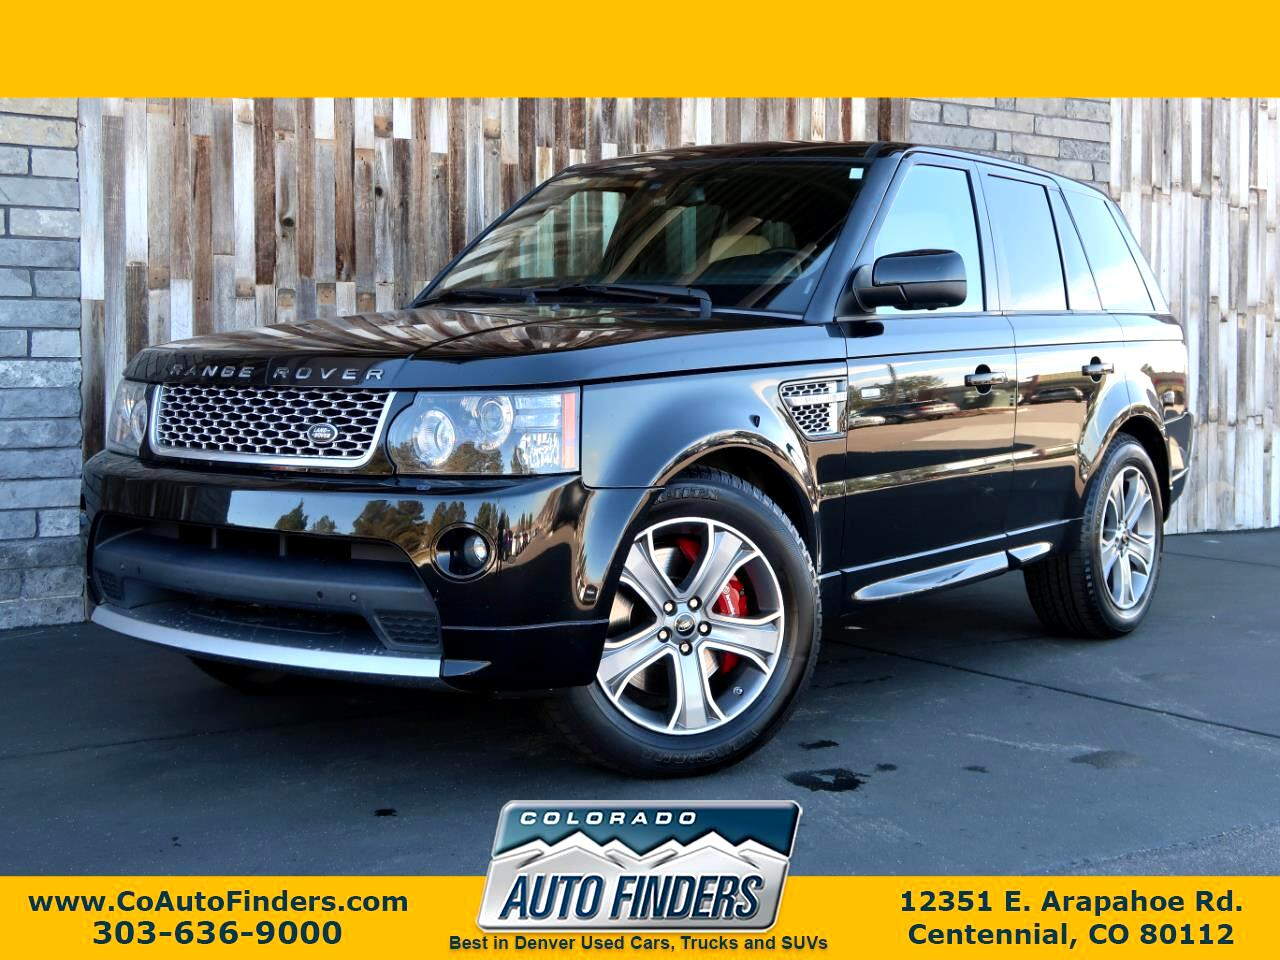 Used Cars For Sale Centennial Co 80112 Colorado Auto Finders